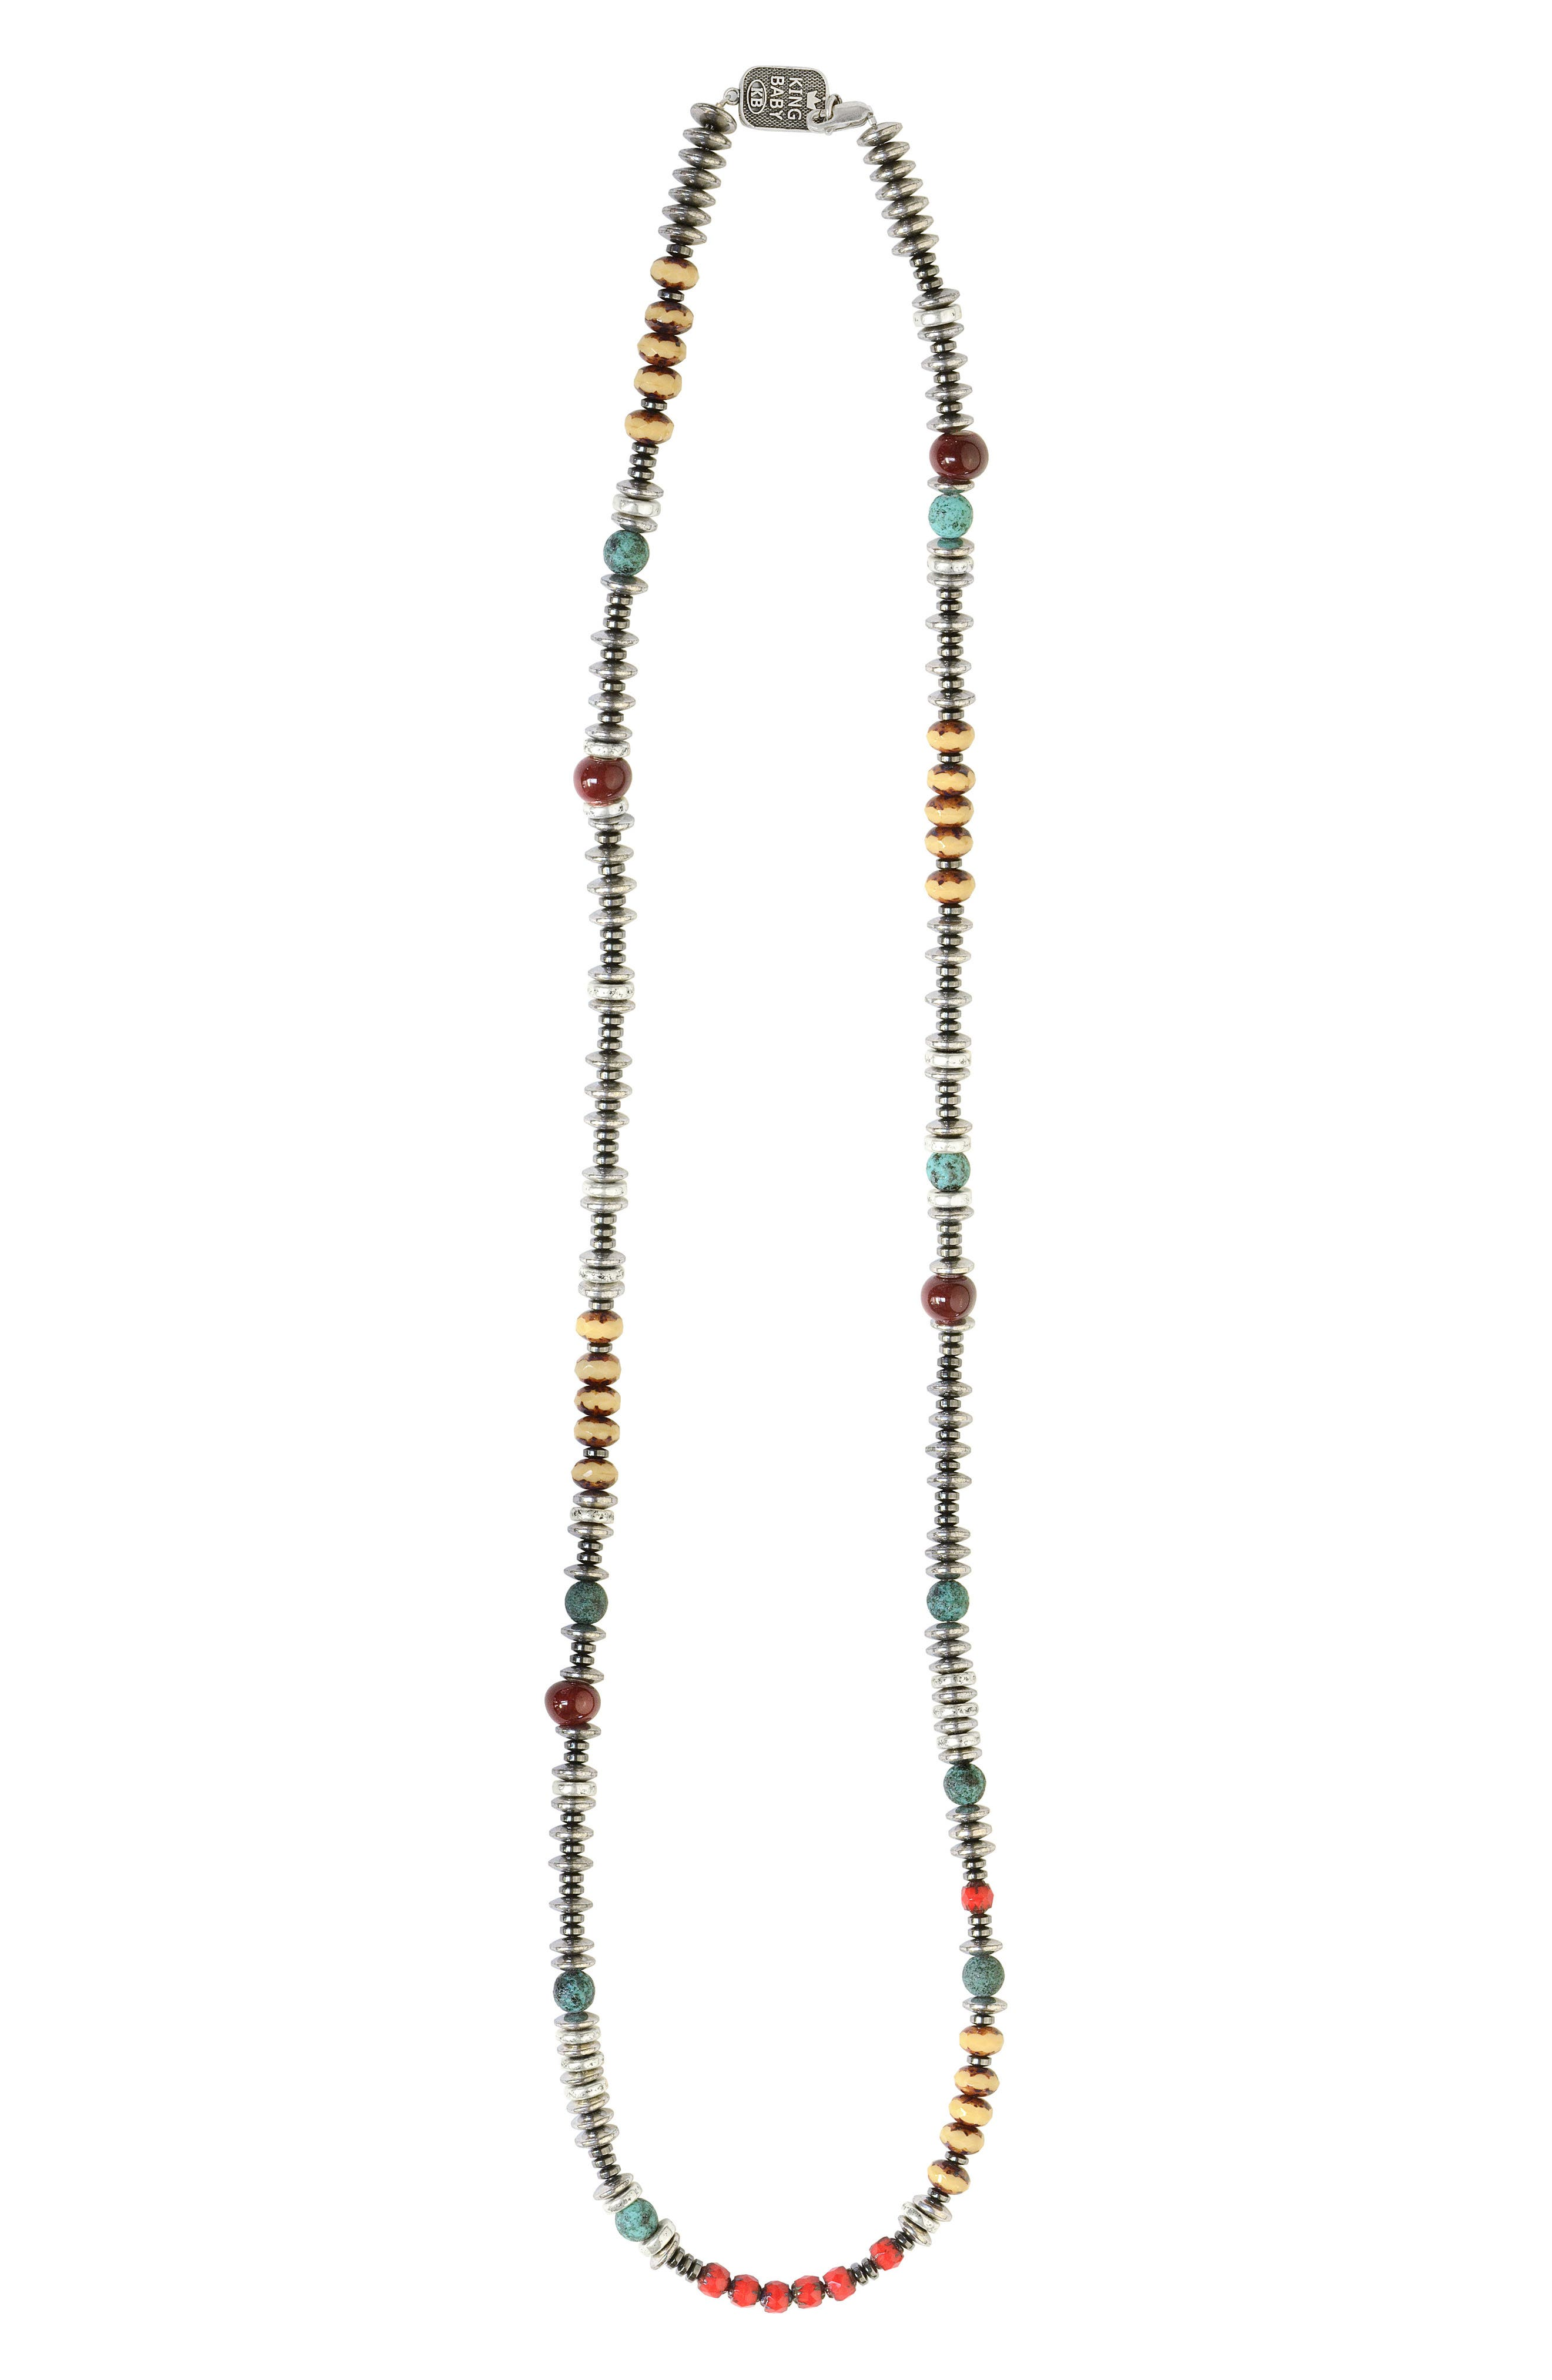 American Voices Ceramic & Glass Bead Necklace,                         Main,                         color, TURQUOISE